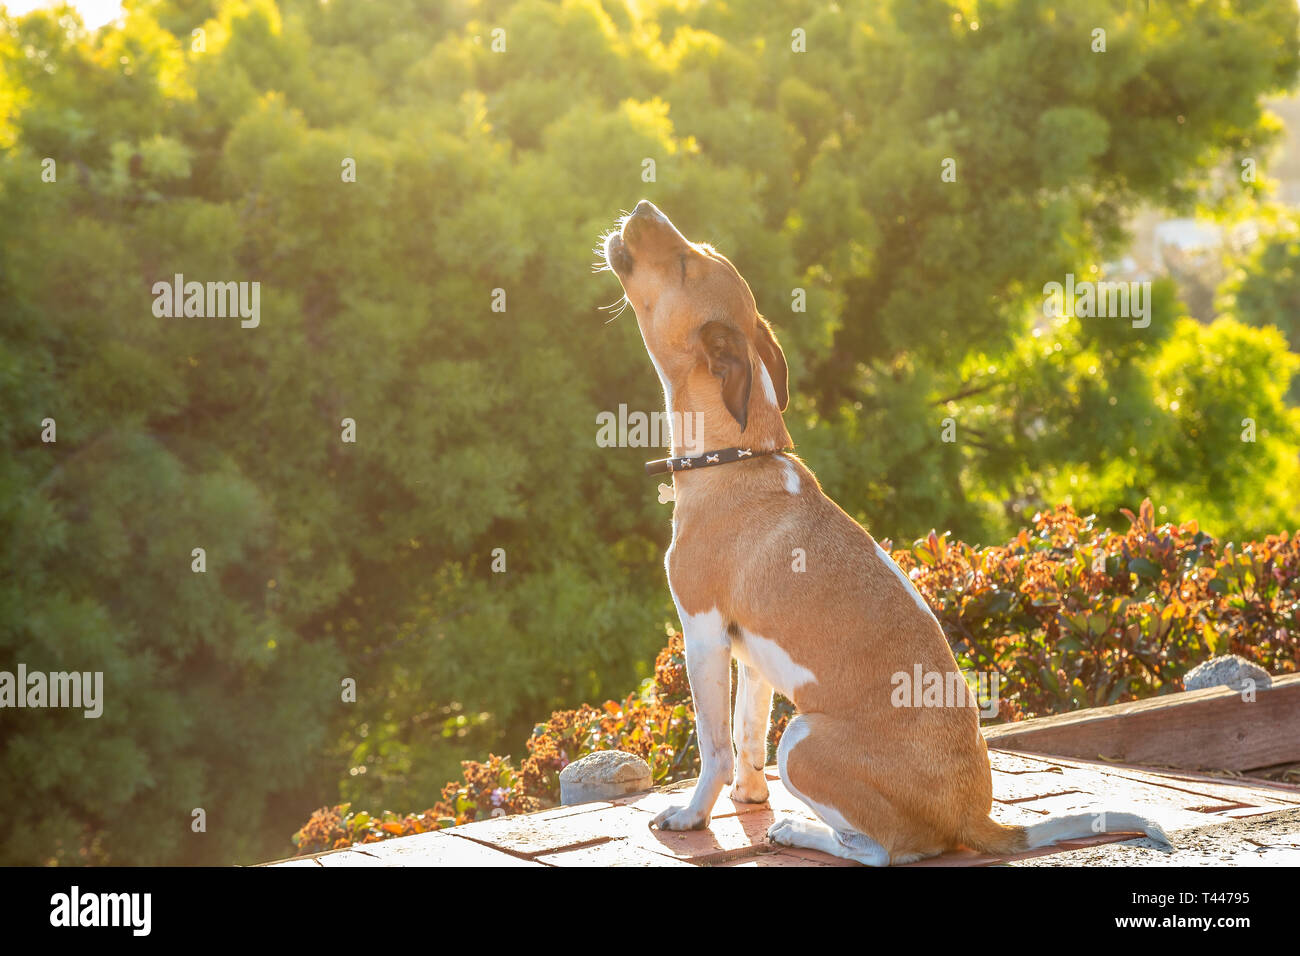 A howling mixed breed dog - Stock Image